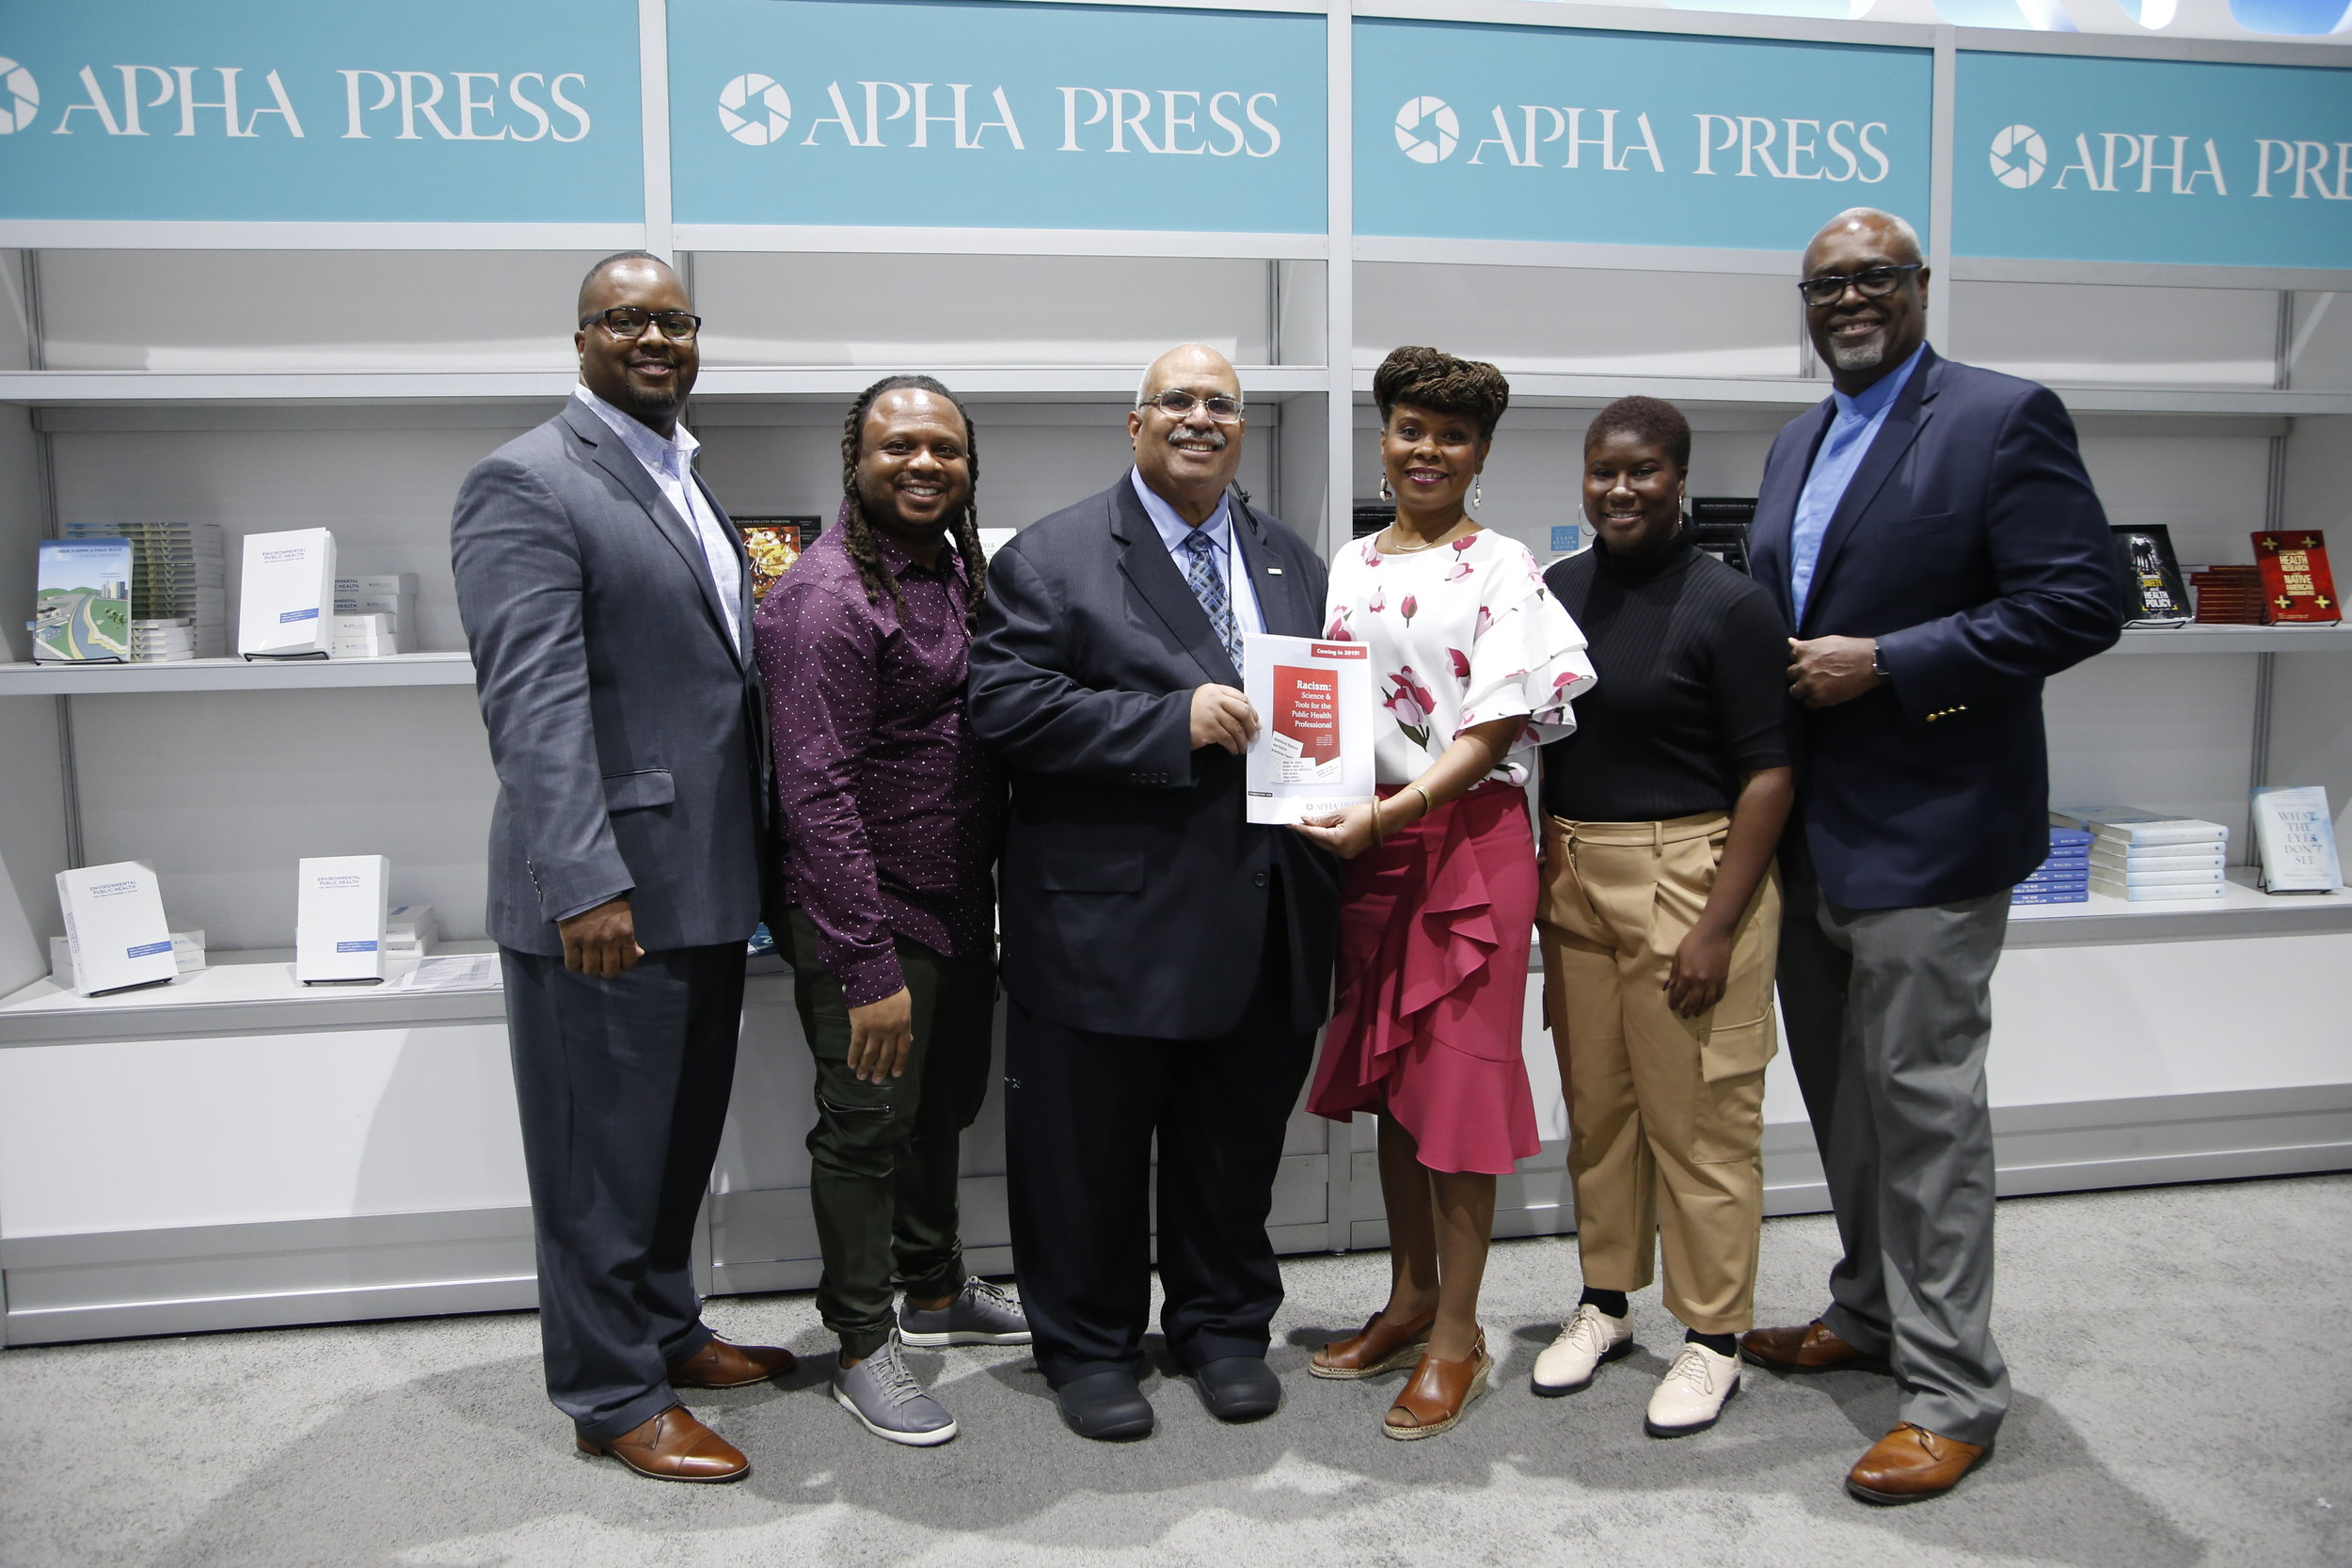 Co-editors with APHA Executive Director at the APHA 2018 Annual Meeting. Left to right, Derek M. Griffith (Vanderbilt University Center for Research on Men's Health), Keon Gilbert (St. Louis Univ.), Georges Benjamin (APHA), Chandra Ford (UCLA Center for the Study of Racism, Social Justice & Health), Natalie Bradford (graduate student researcher) and Marino Bruce (Vanderbilt University Center for Research on Men's Health and Jackson State University).